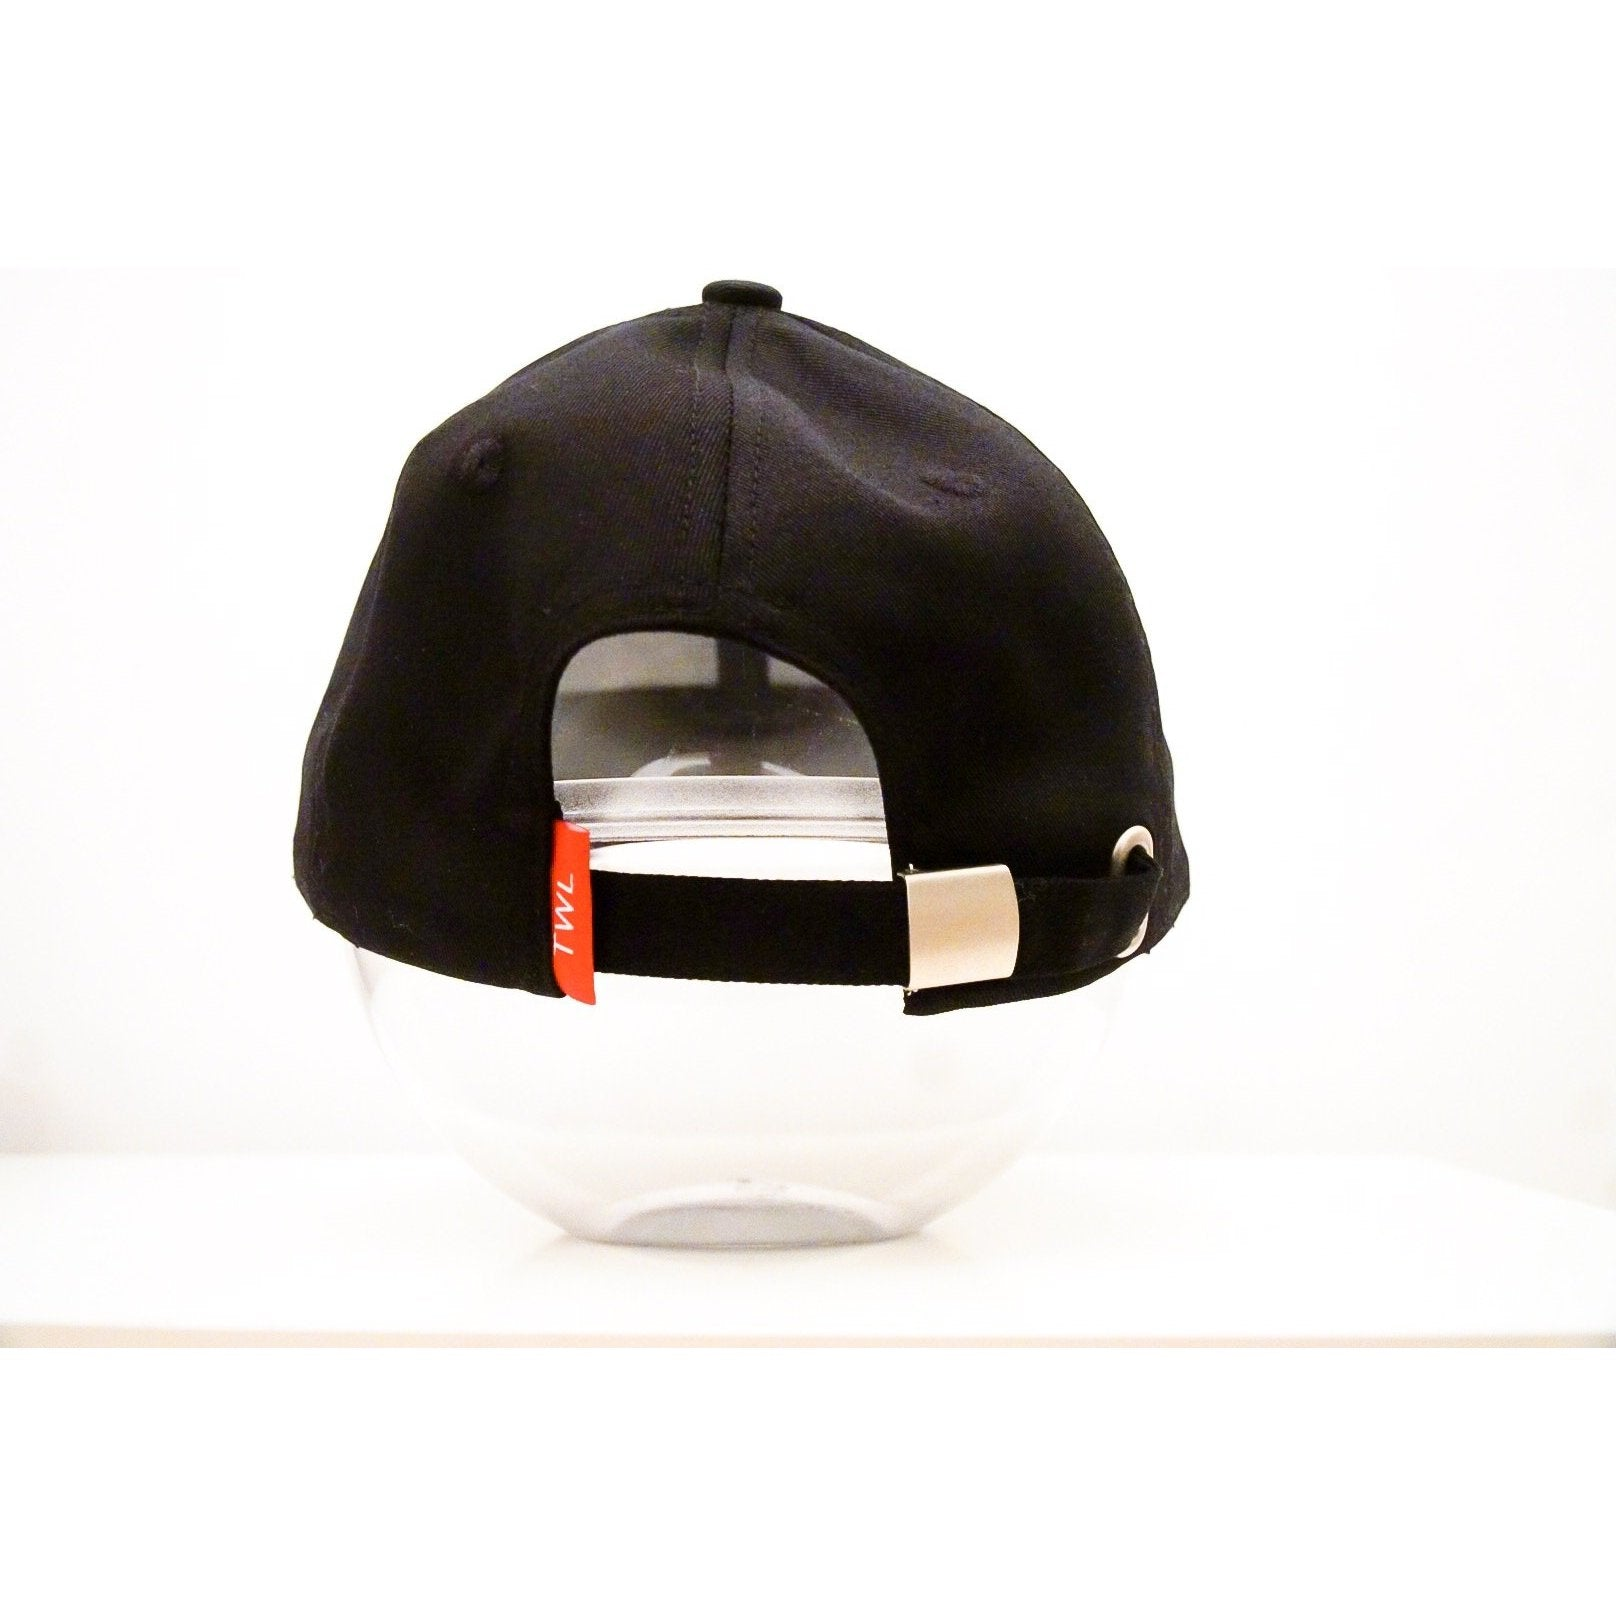 Black Wolfe Pitcher Cap - The Wolfe London